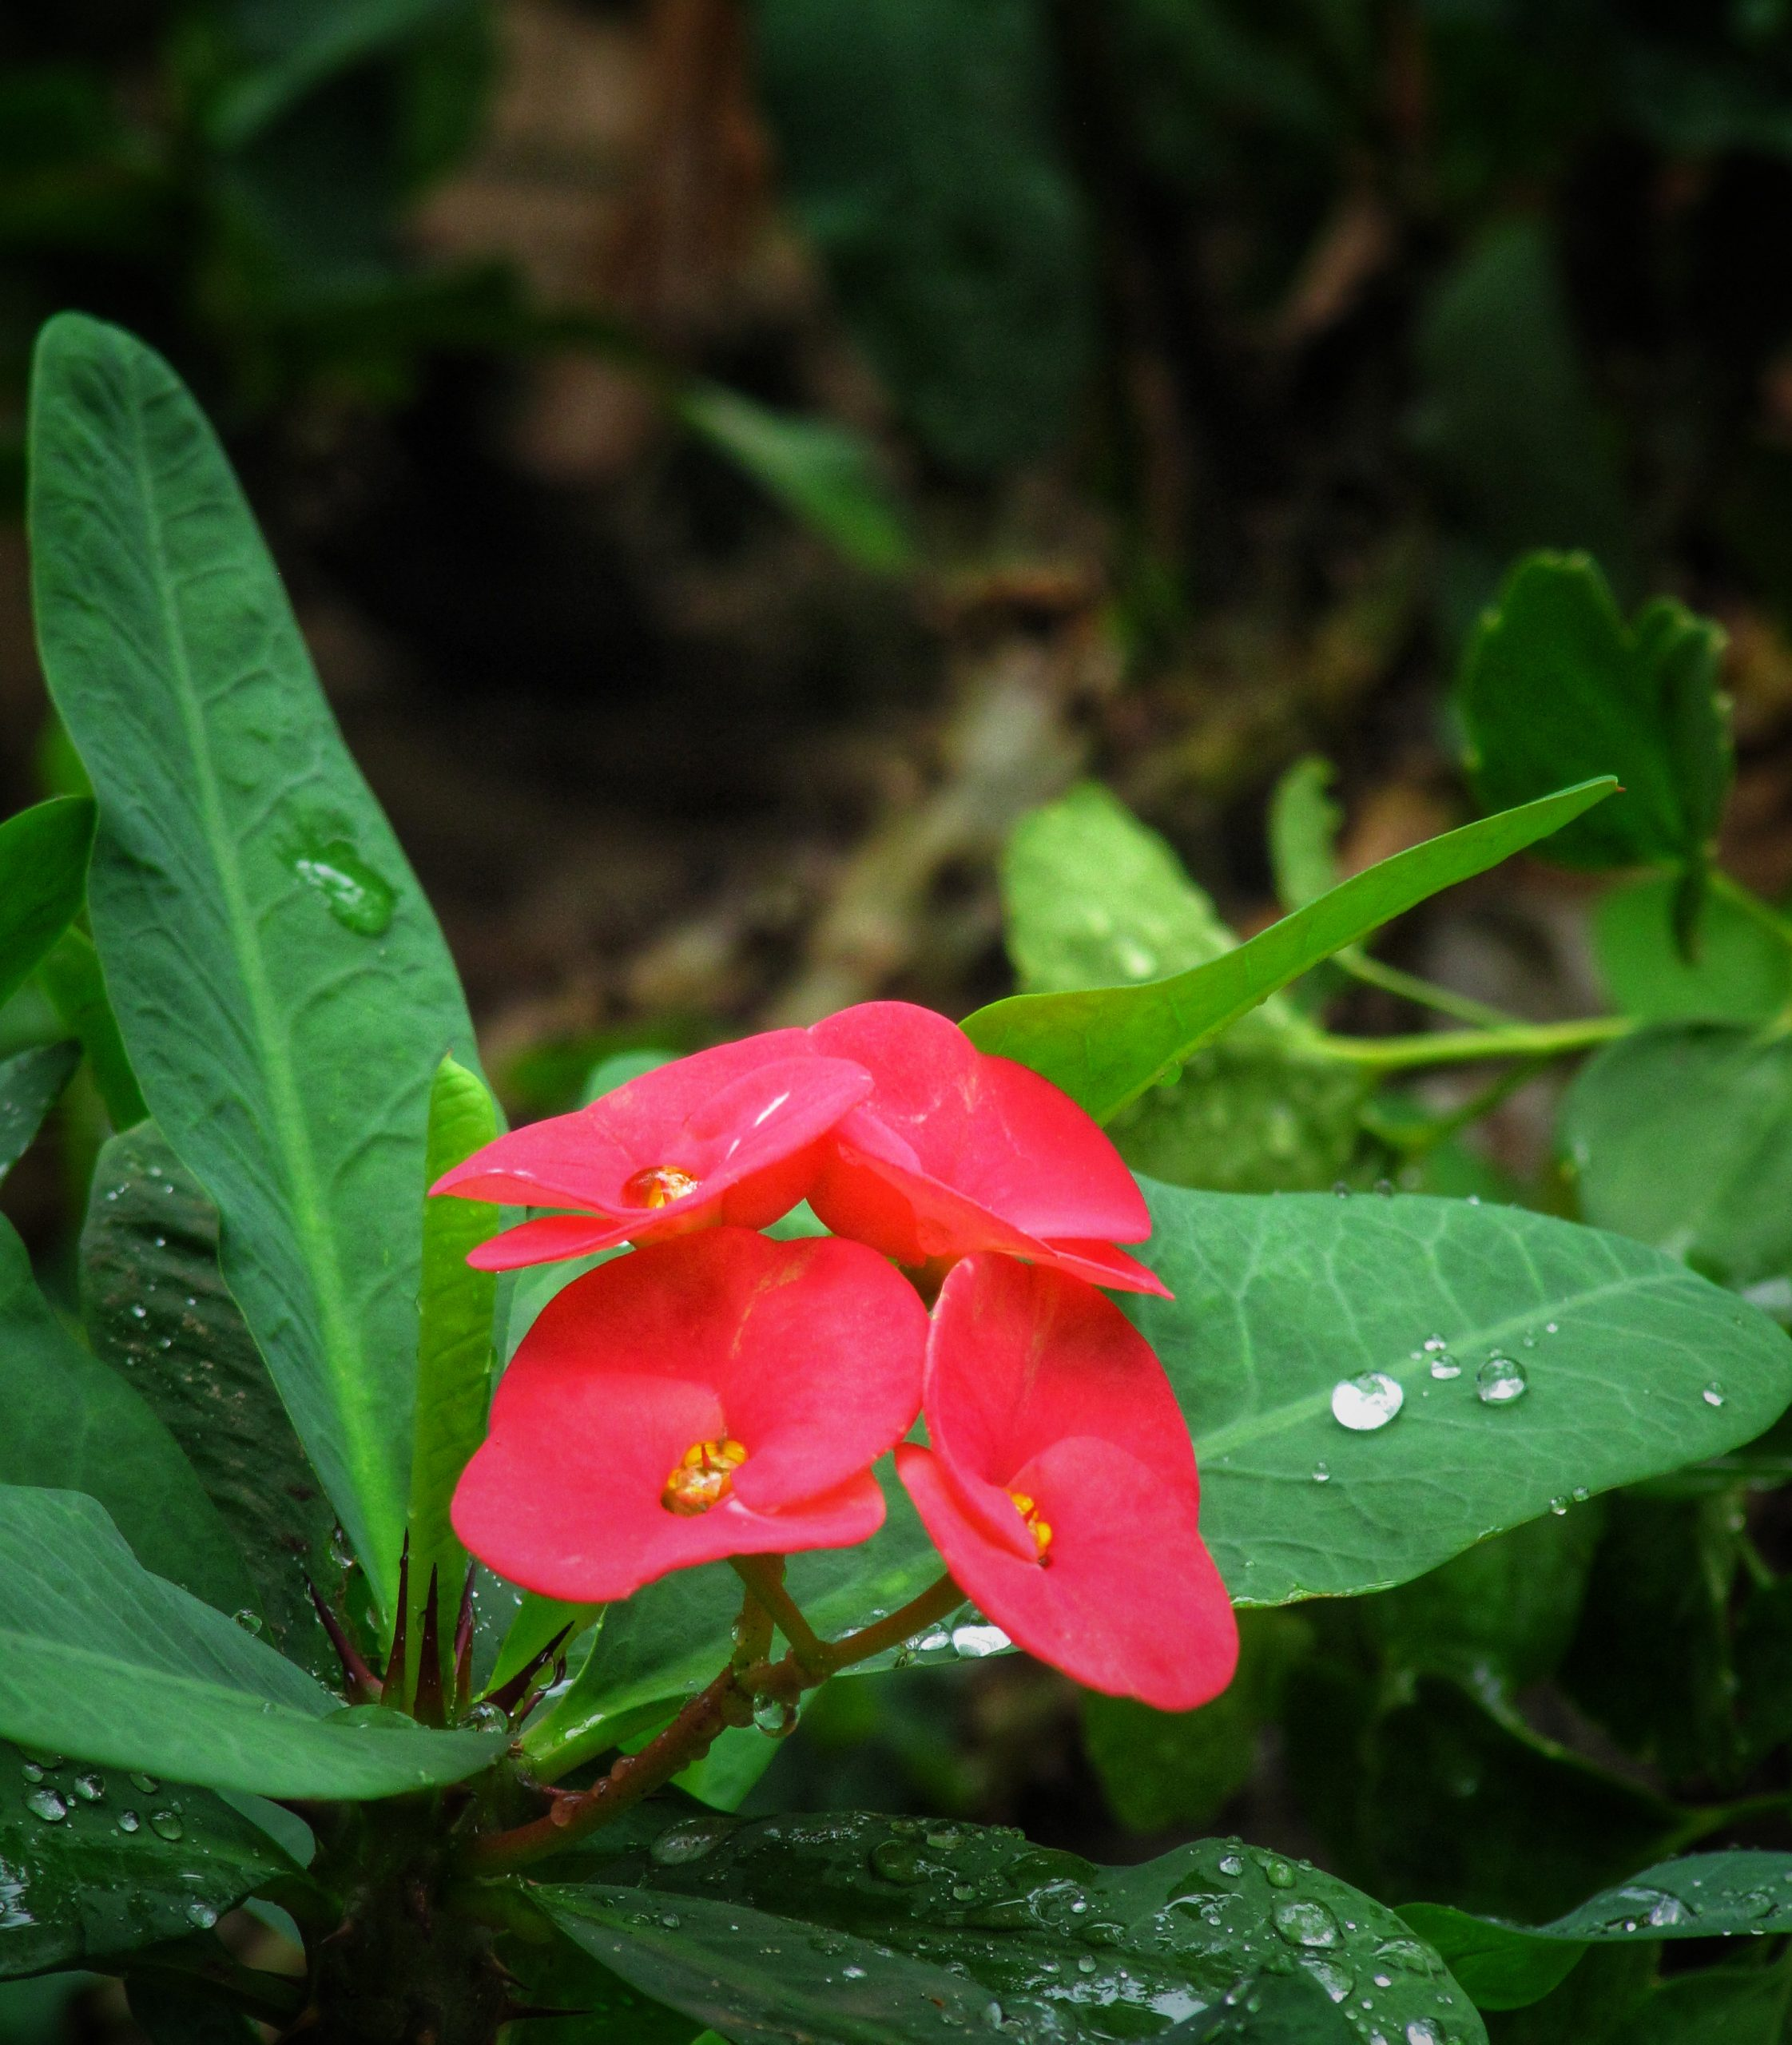 raindrops on red flowers